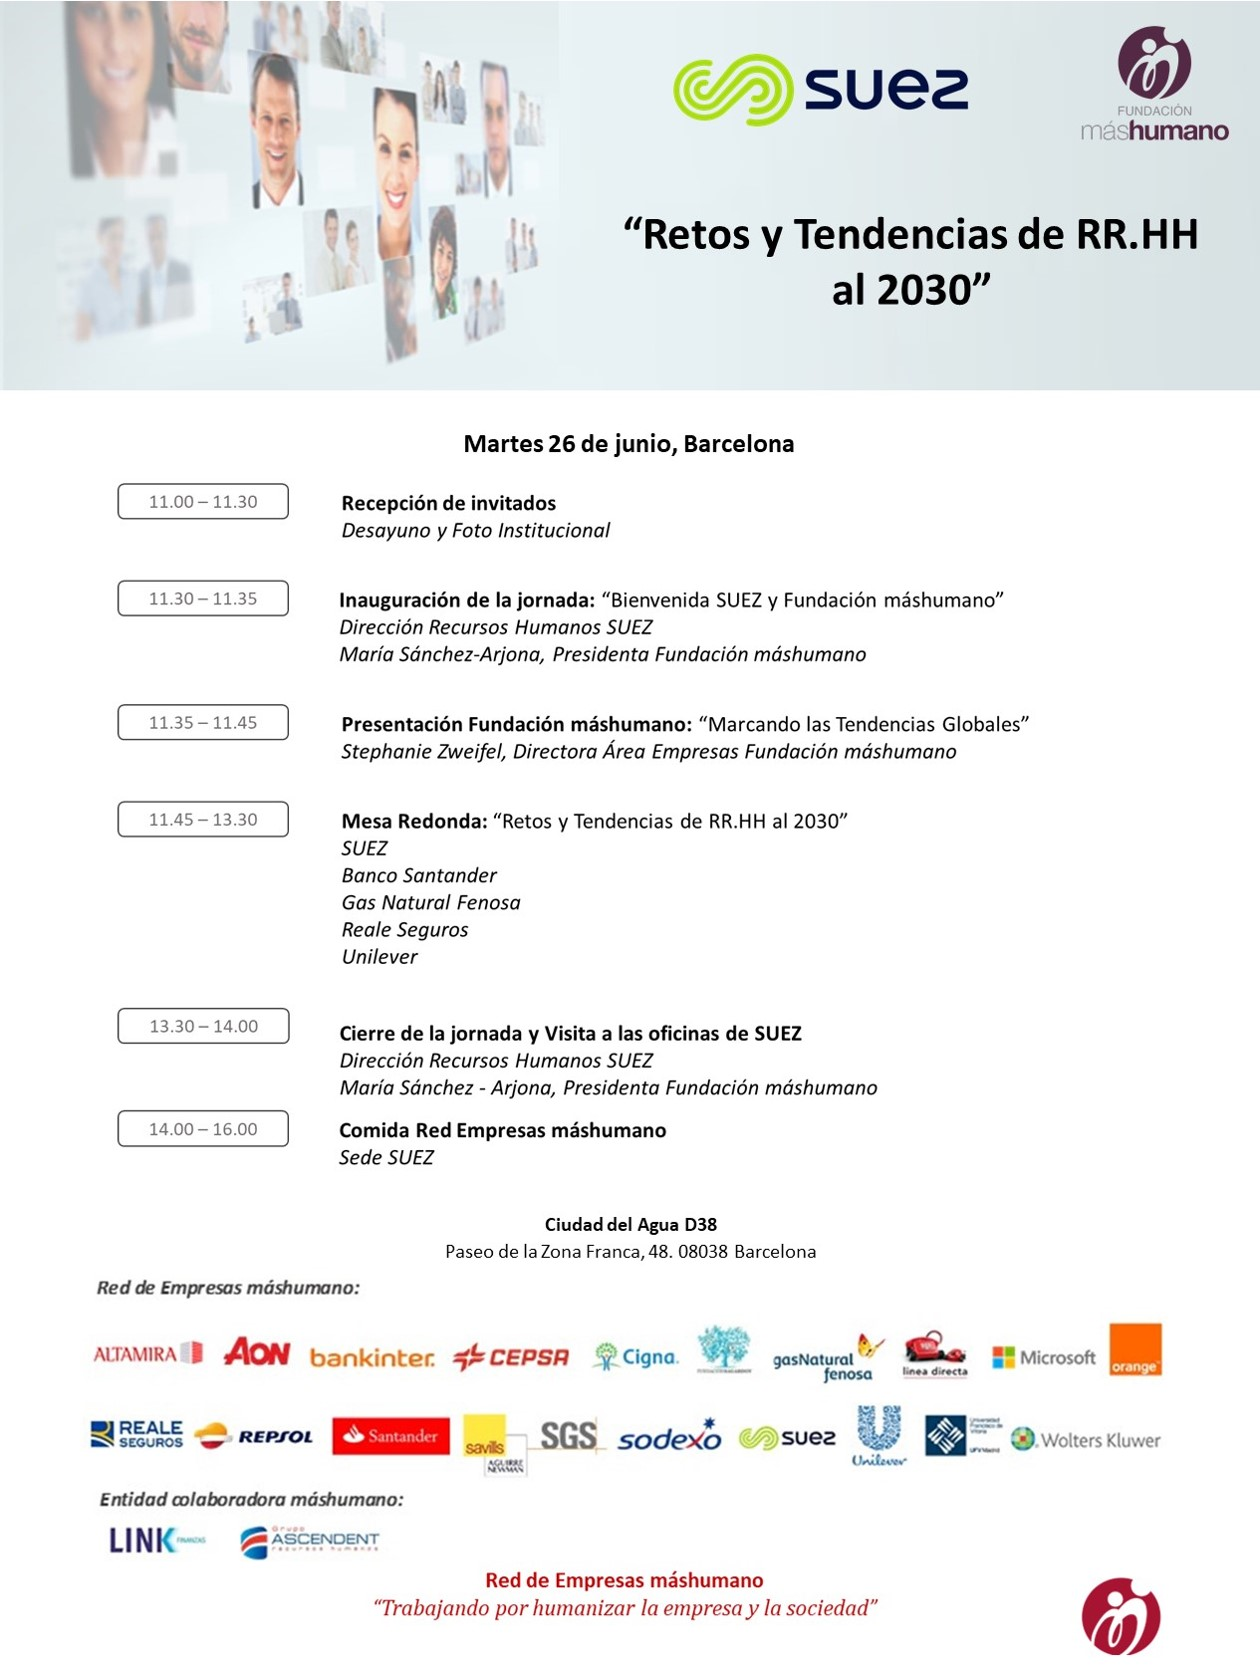 Retos y Tendencias de RR.HH al 2030